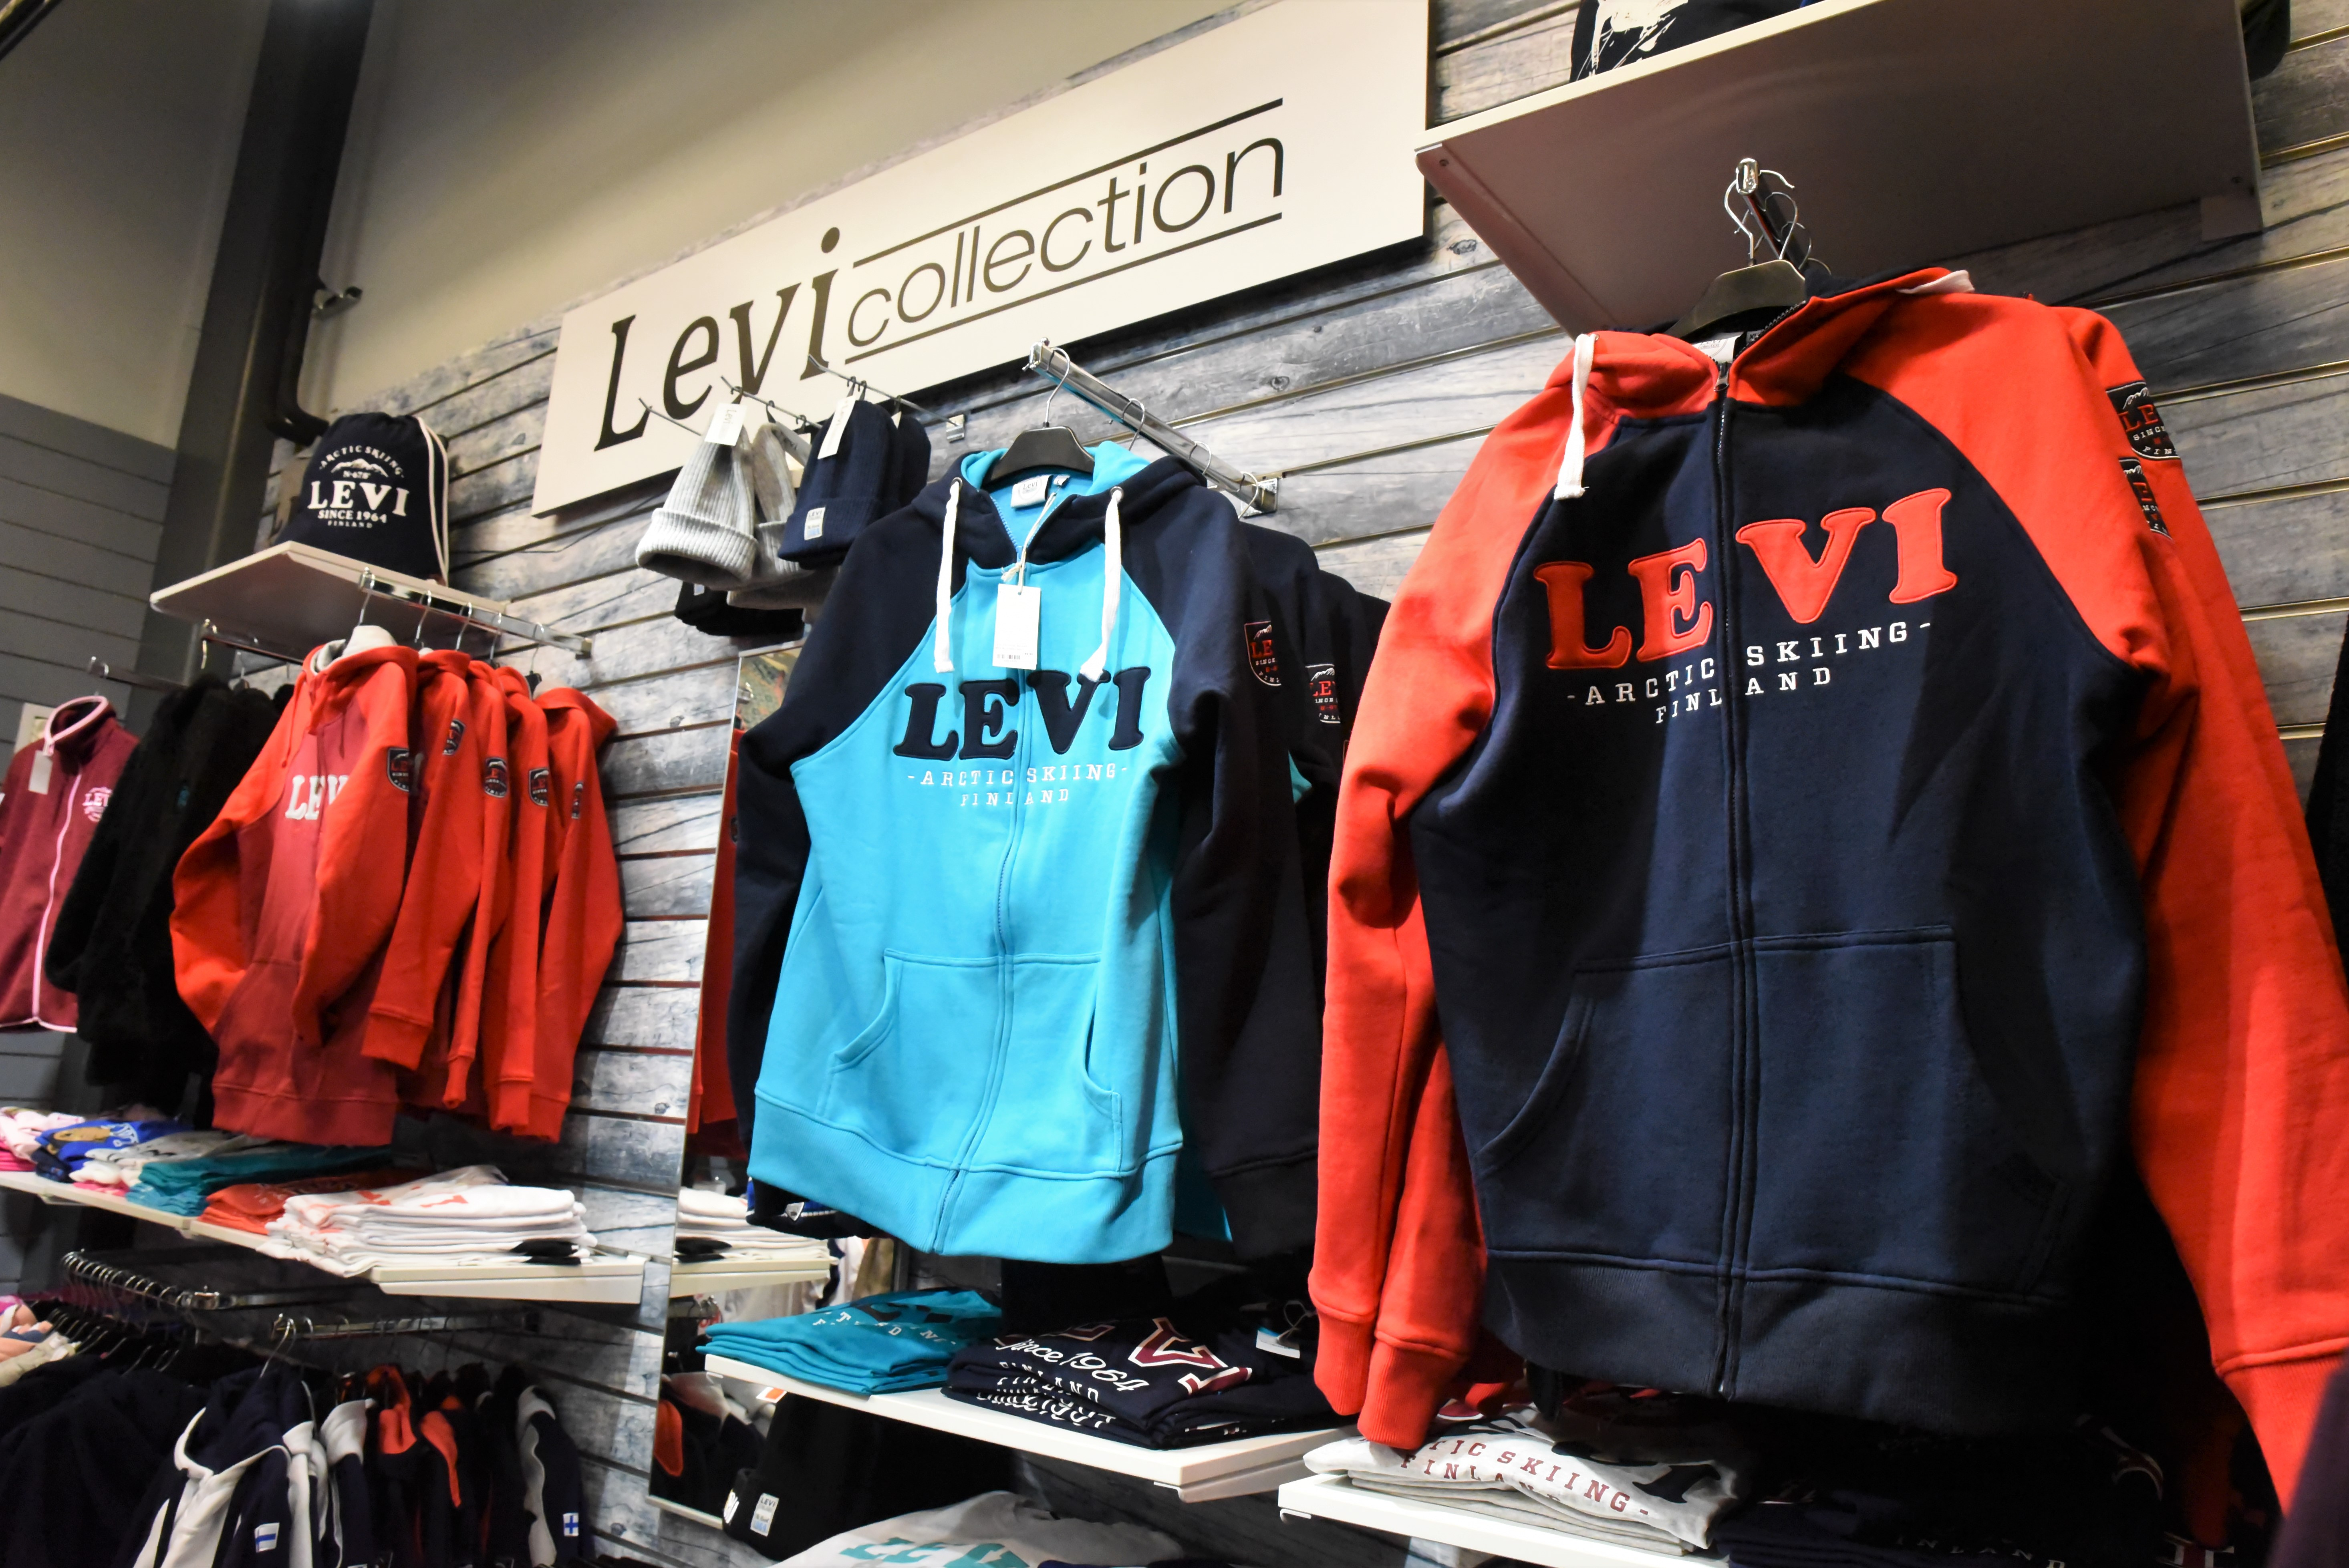 Levi collection